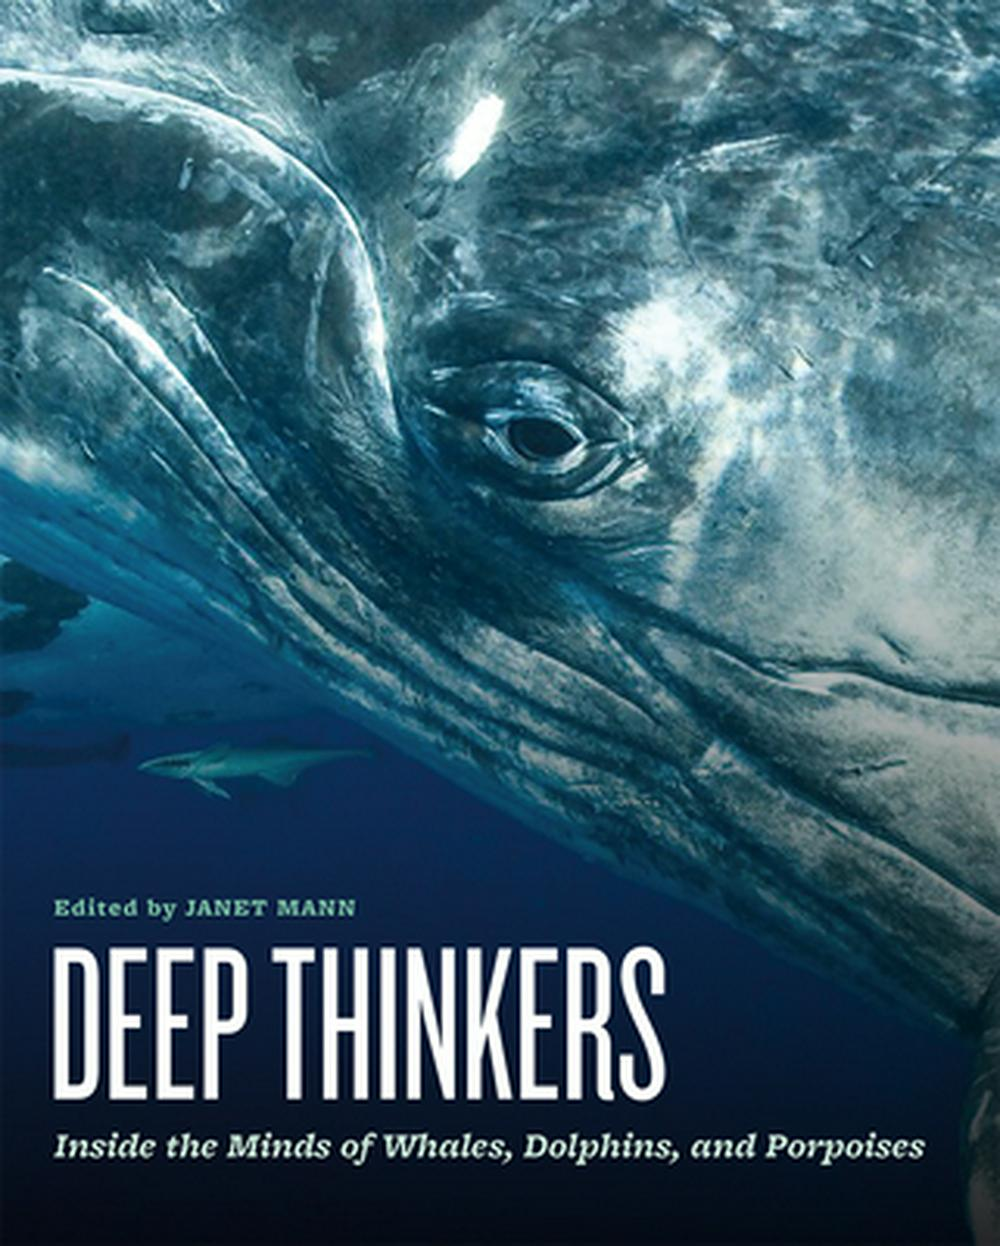 Deep ThinkersInside the Minds of Whales, Dolphins, and Porpo...